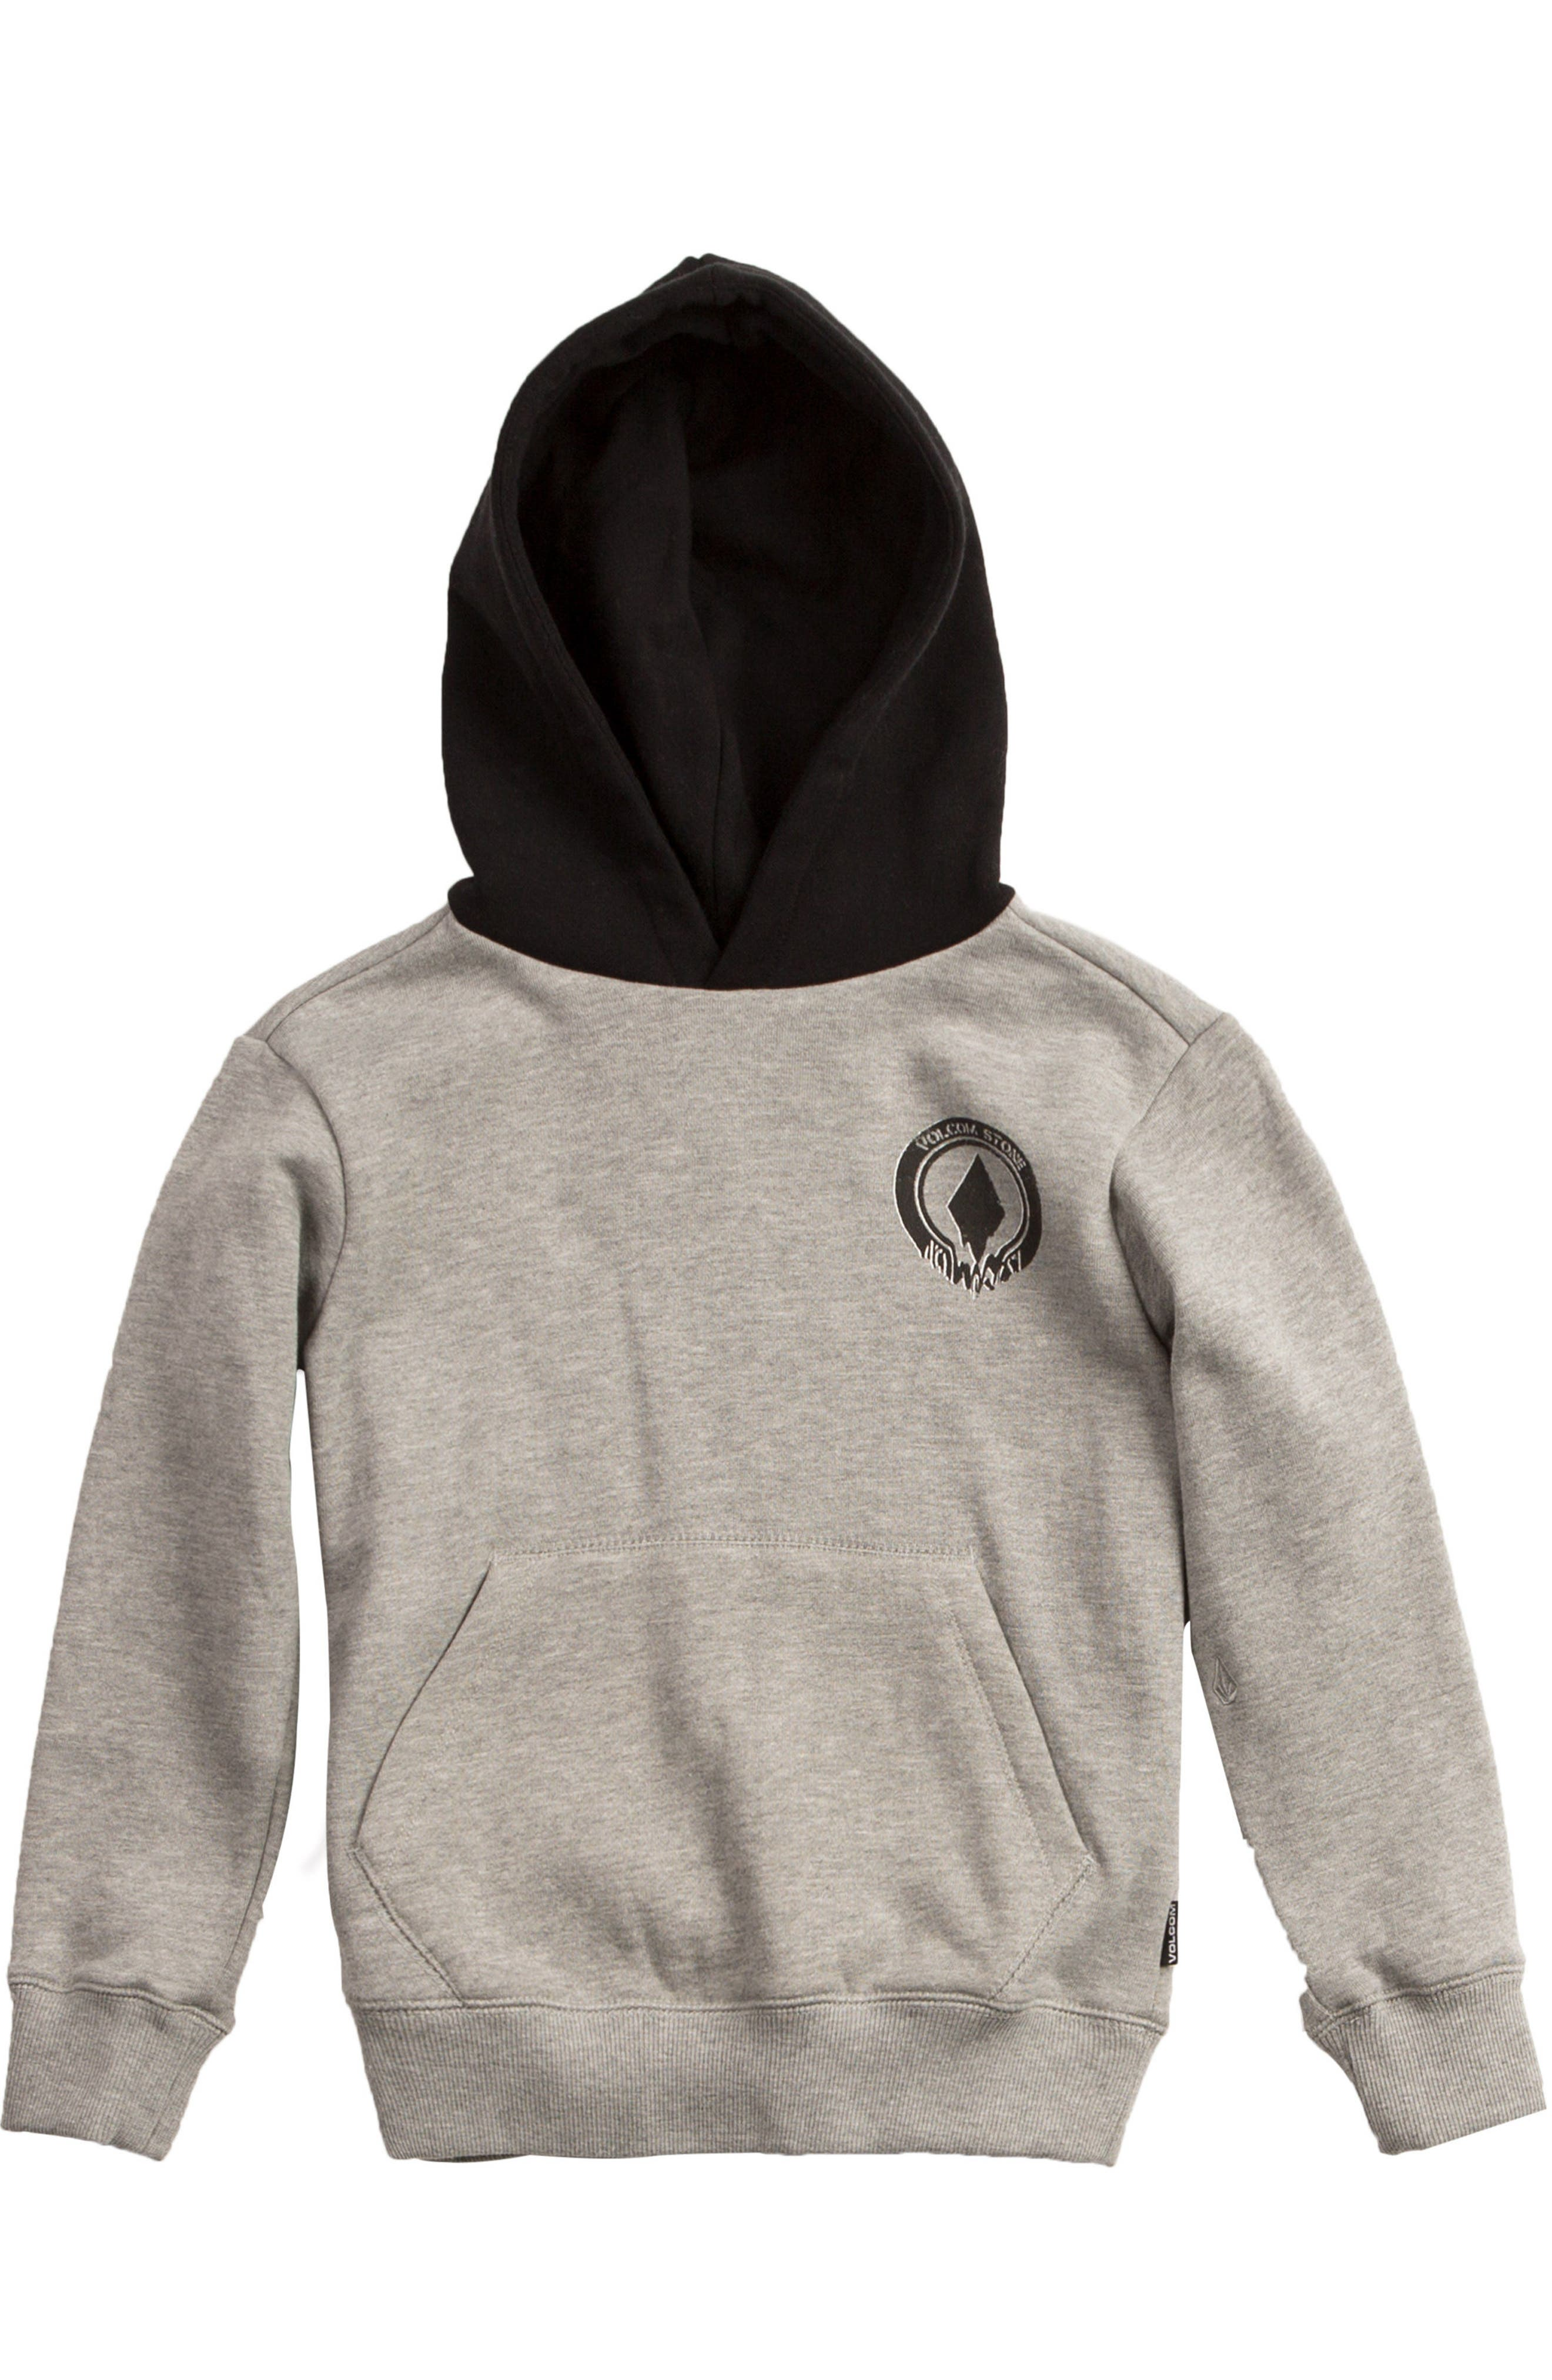 Supply Stone Graphic Pullover Hoodie,                         Main,                         color, Grey